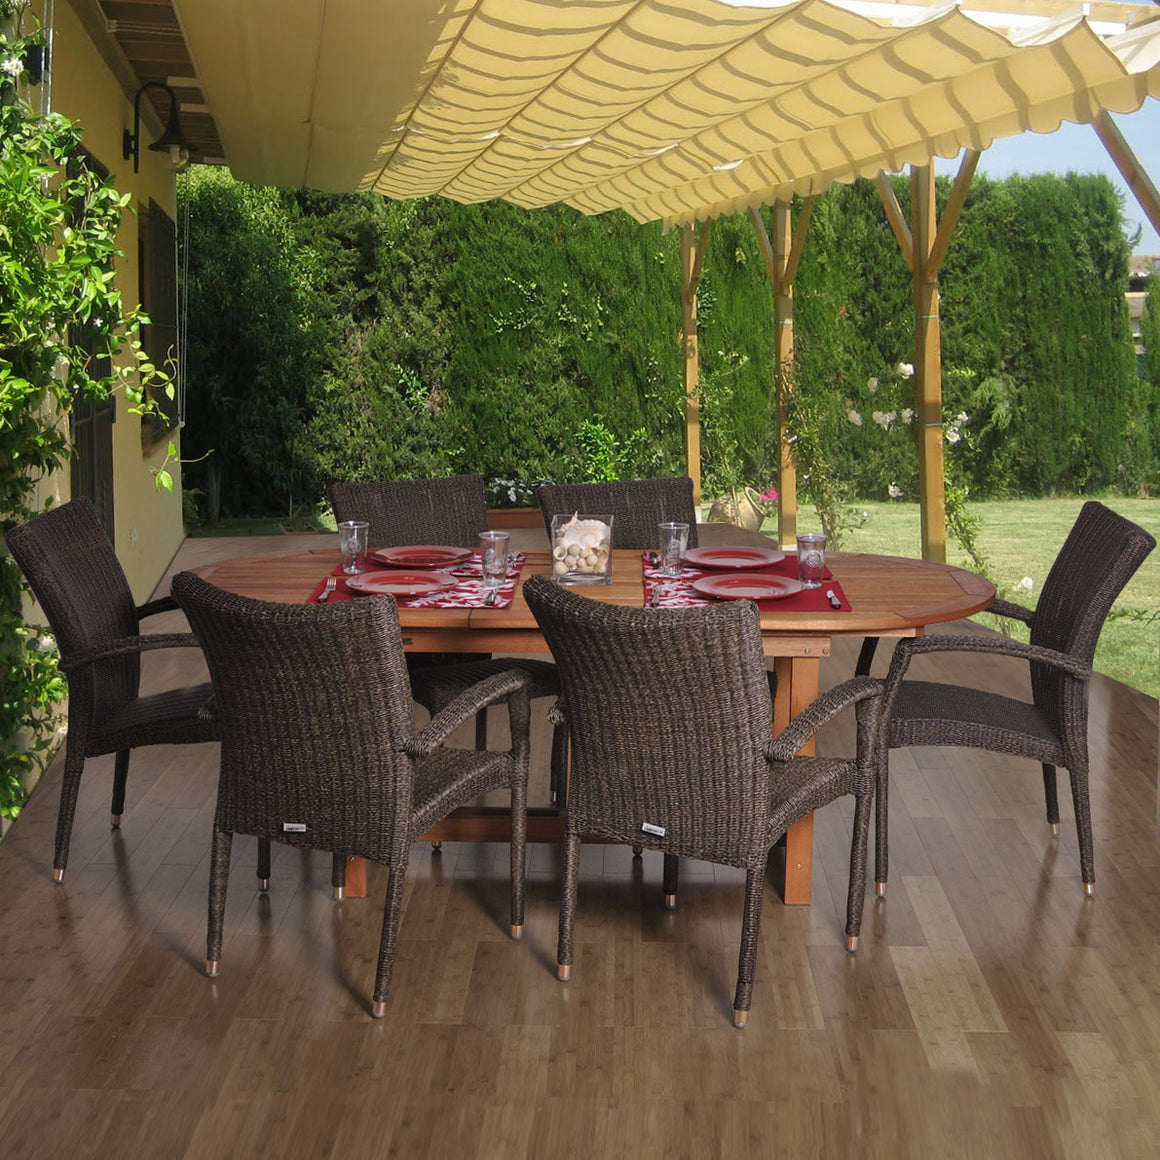 Lemans Deluxe 7 Piece Eucalyptus/Wicker Extendable Oval Patio Dining Set , International Home Miami- grayburd